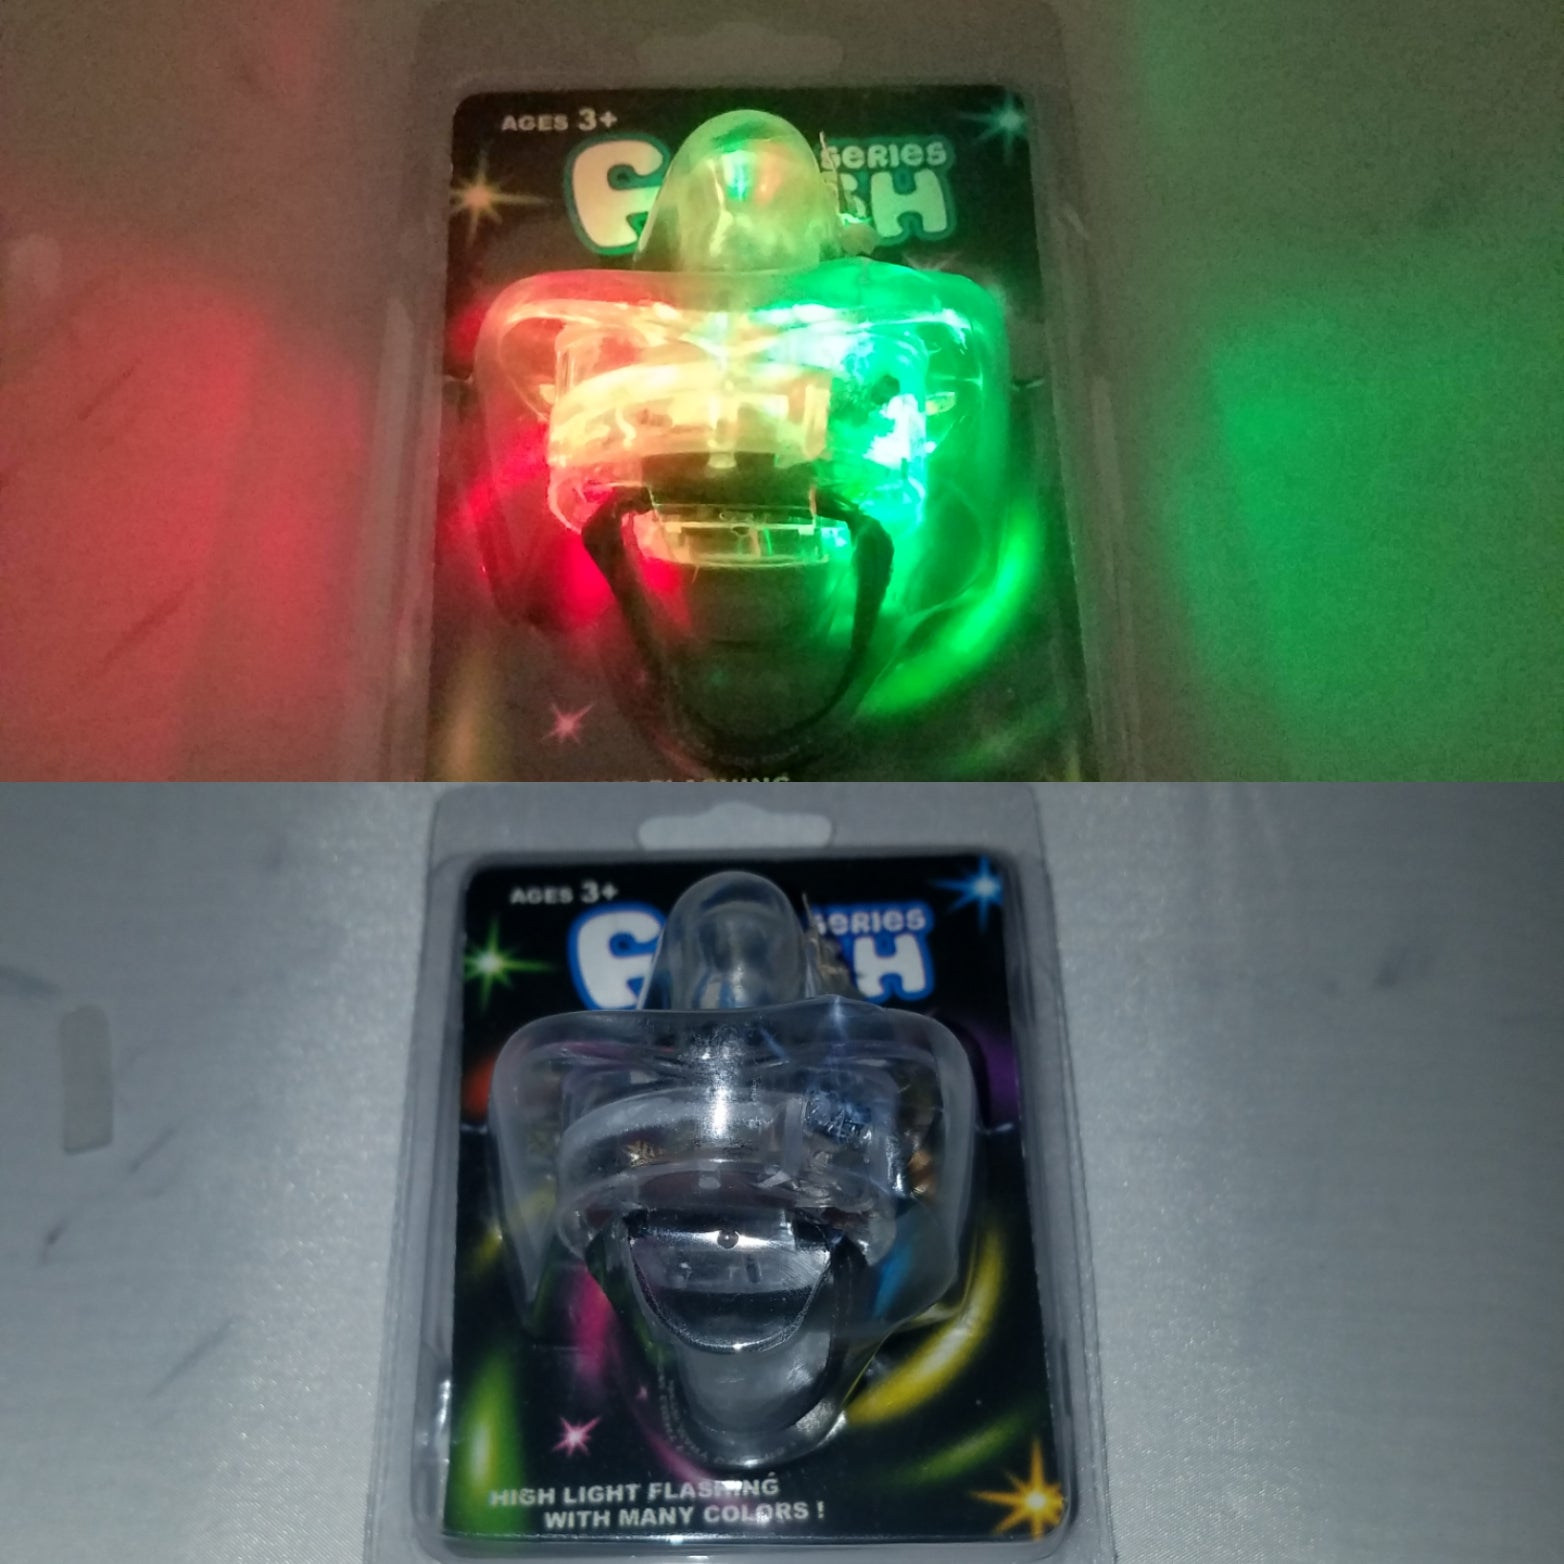 Light up pacifier